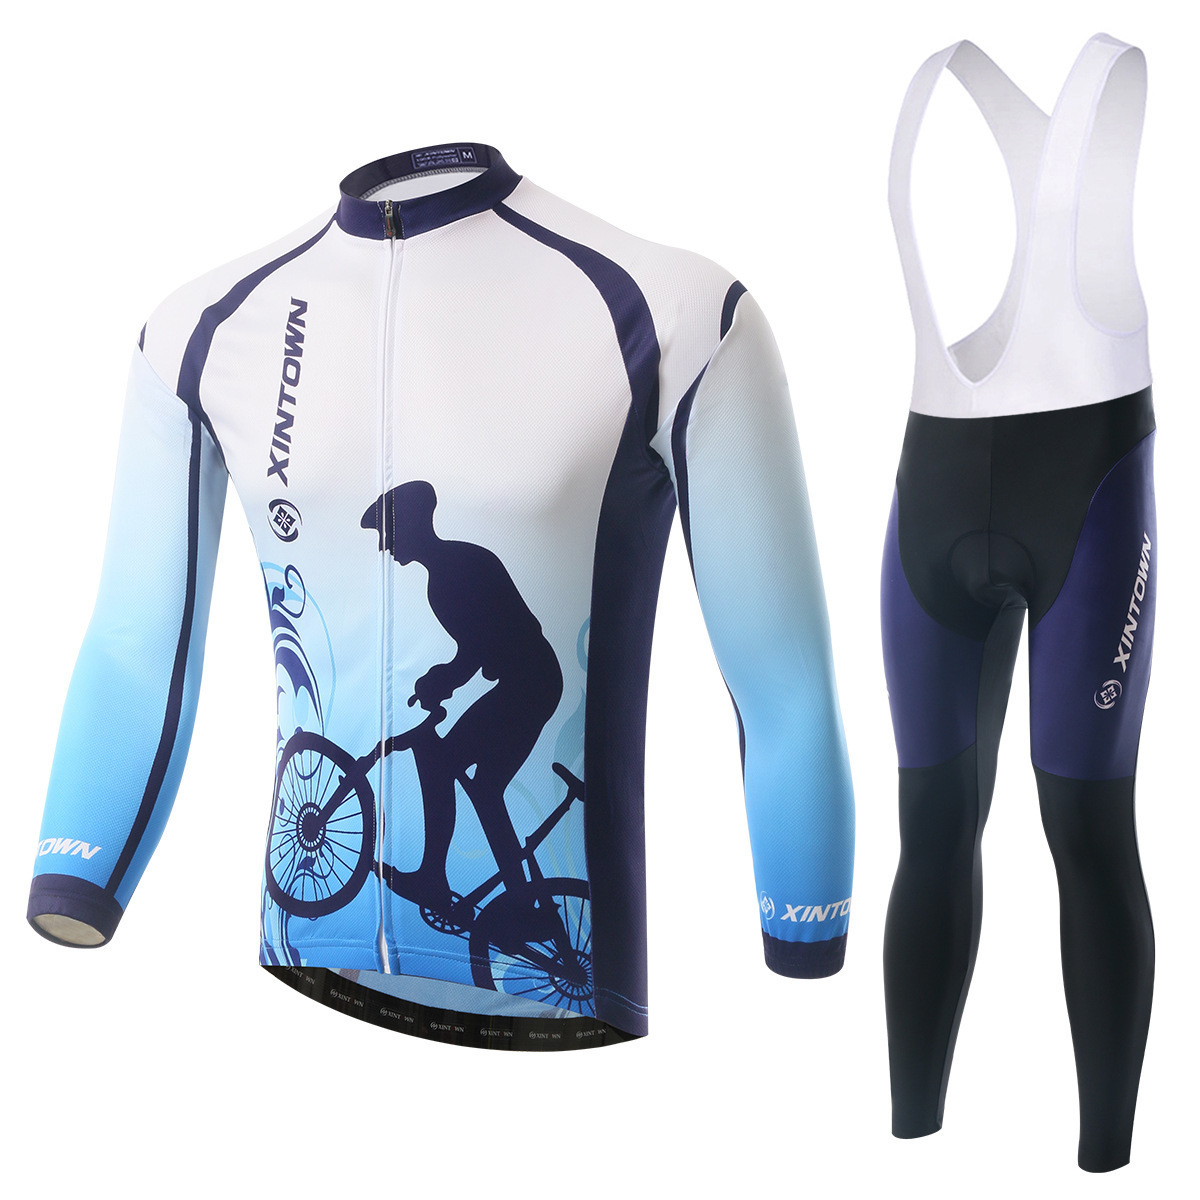 BOODUN Wang Yue Riding Clothes Straps Long Sleeve Suit Bicycle Serve Catch Down Windbreak Keep Warm Function Underwear